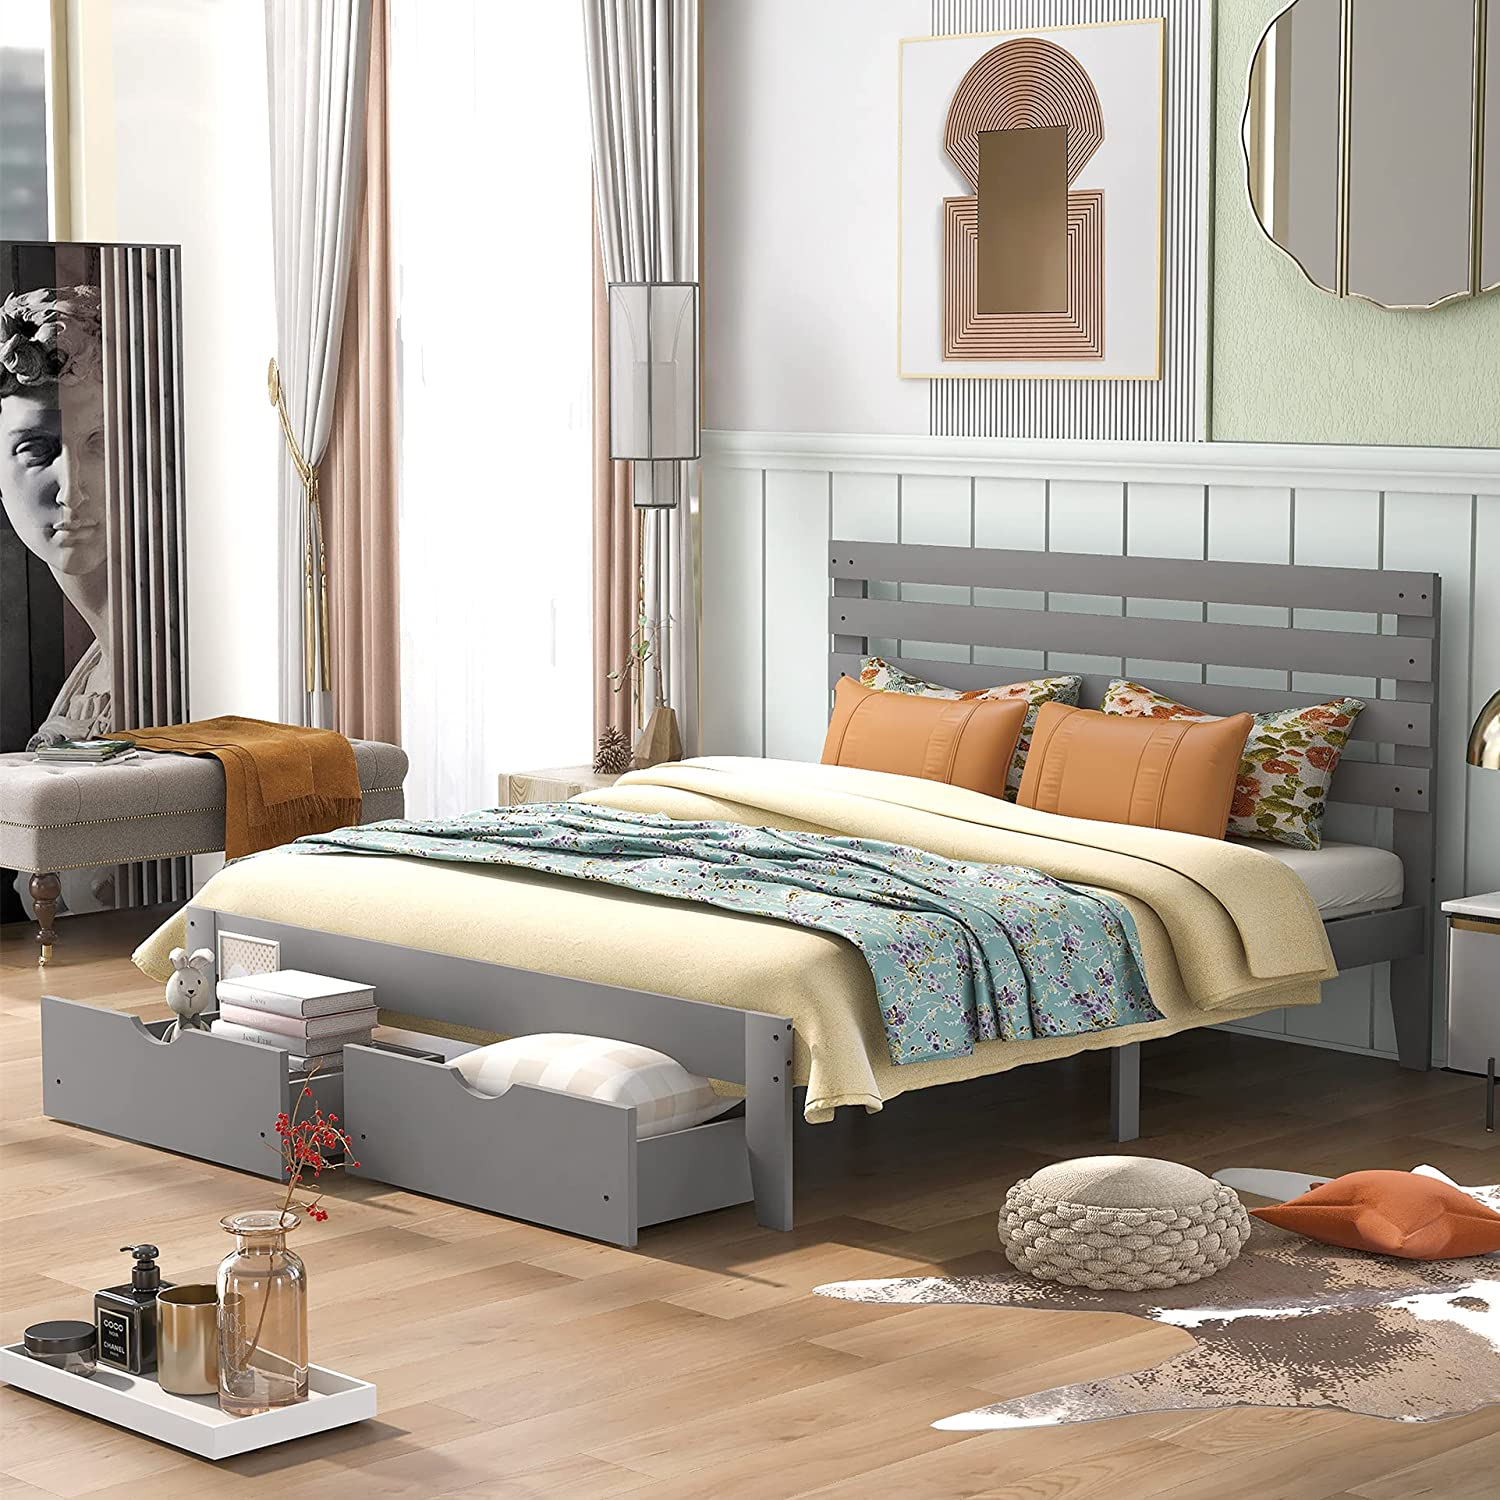 Queen Bed National uniform free shipping OFFicial site Frame with W Drawers Headboard